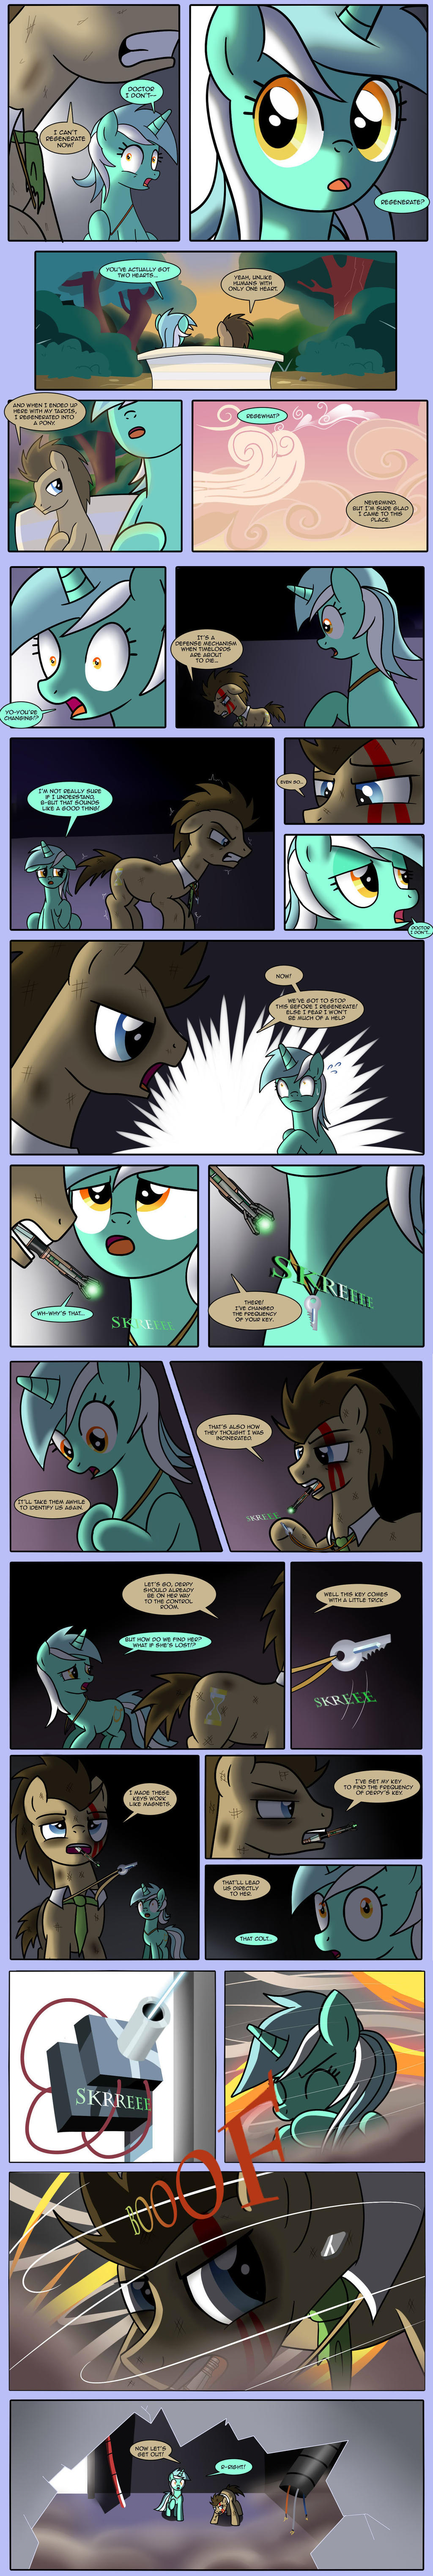 Salon de discussion publique 2013 - Page 38 Doctor_whooves___new_skin_pt_3_by_edowaado-d5x9phh